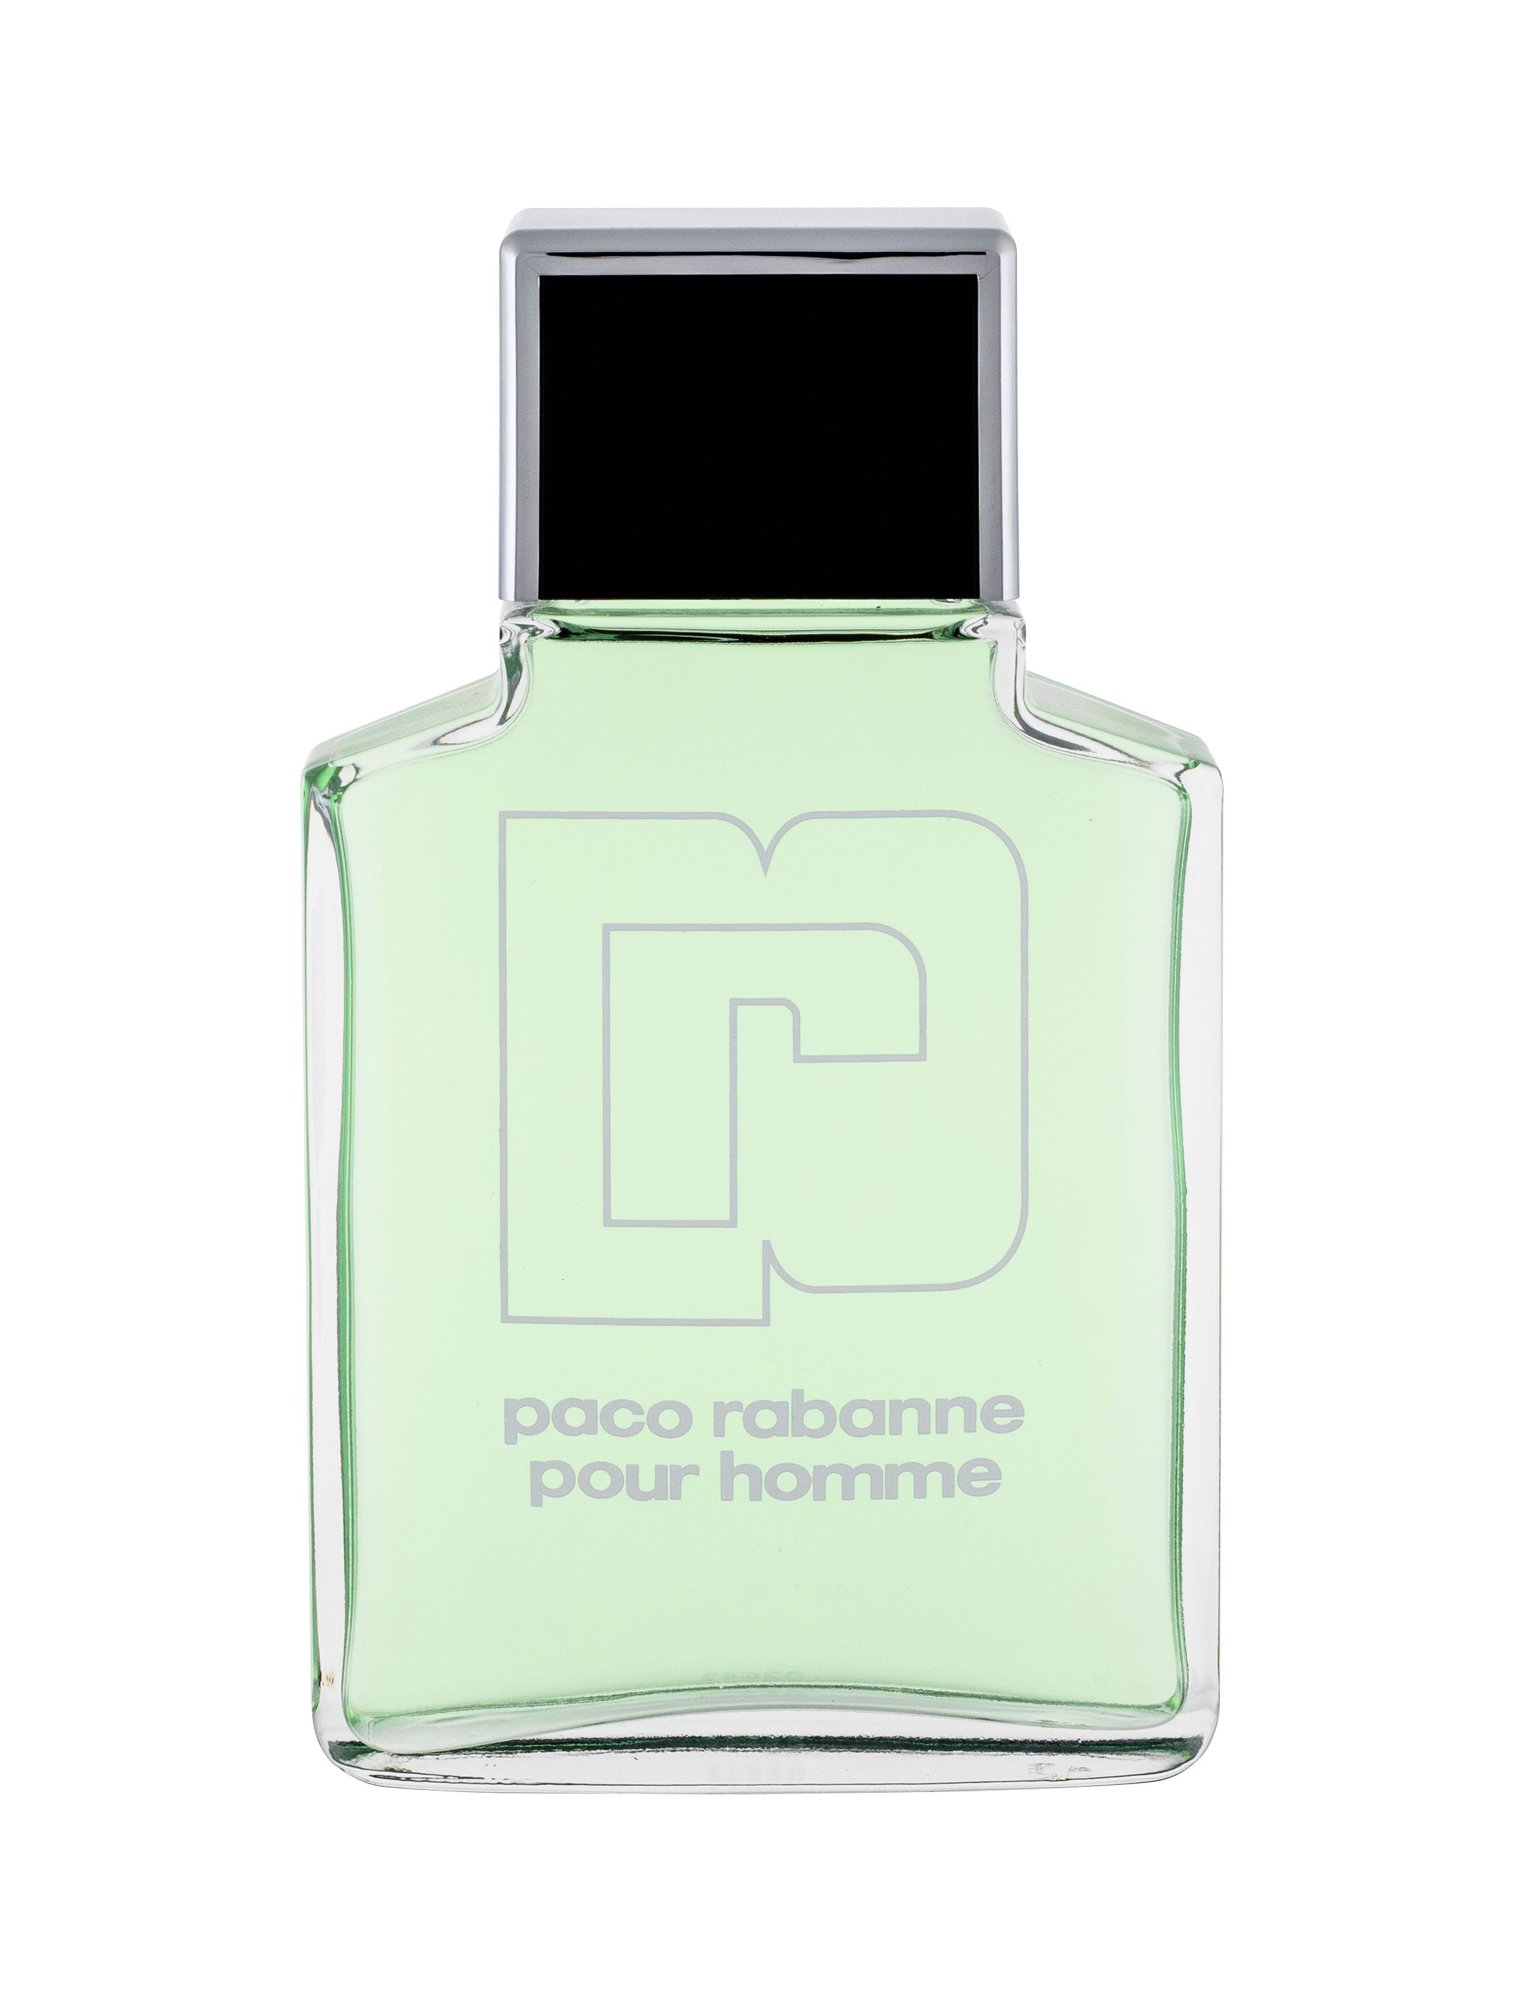 Paco Rabanne Paco Rabanne Pour Homme Aftershave 100ml